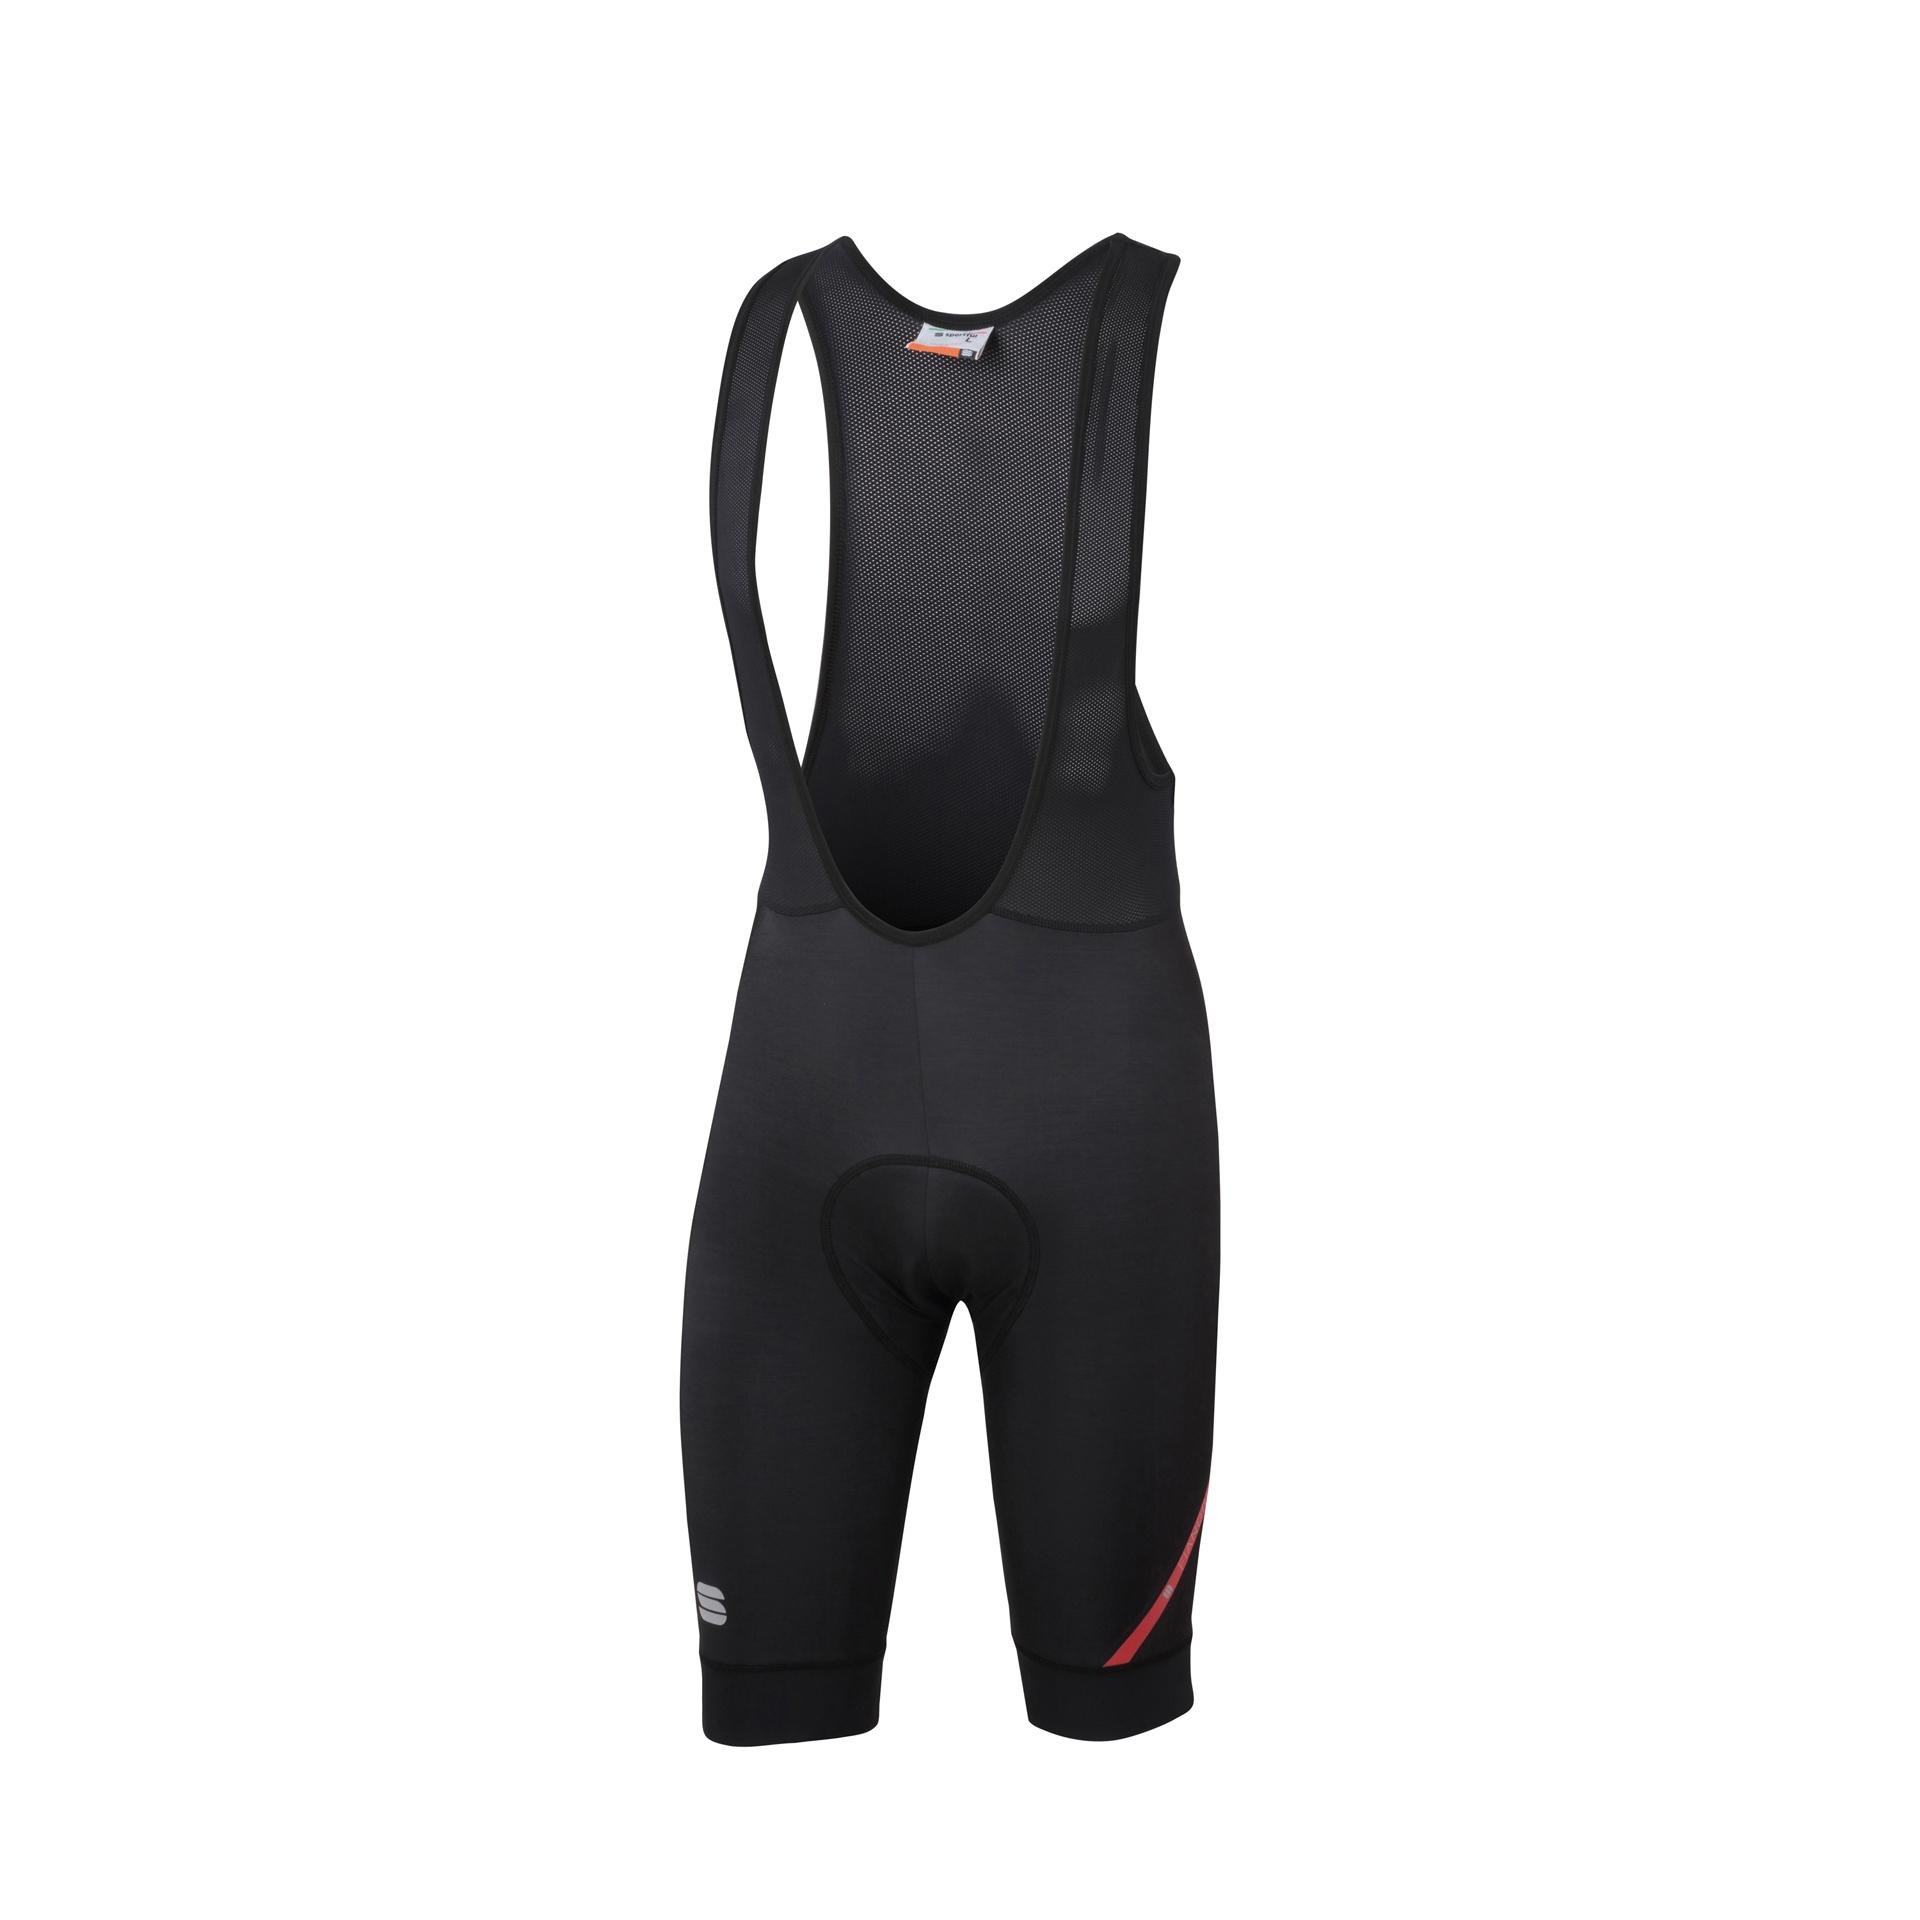 Sportful Fietsbroek met bretels - koersbroek Heren Zwart  / SF Fiandre Norain 2 Bibshort-Black